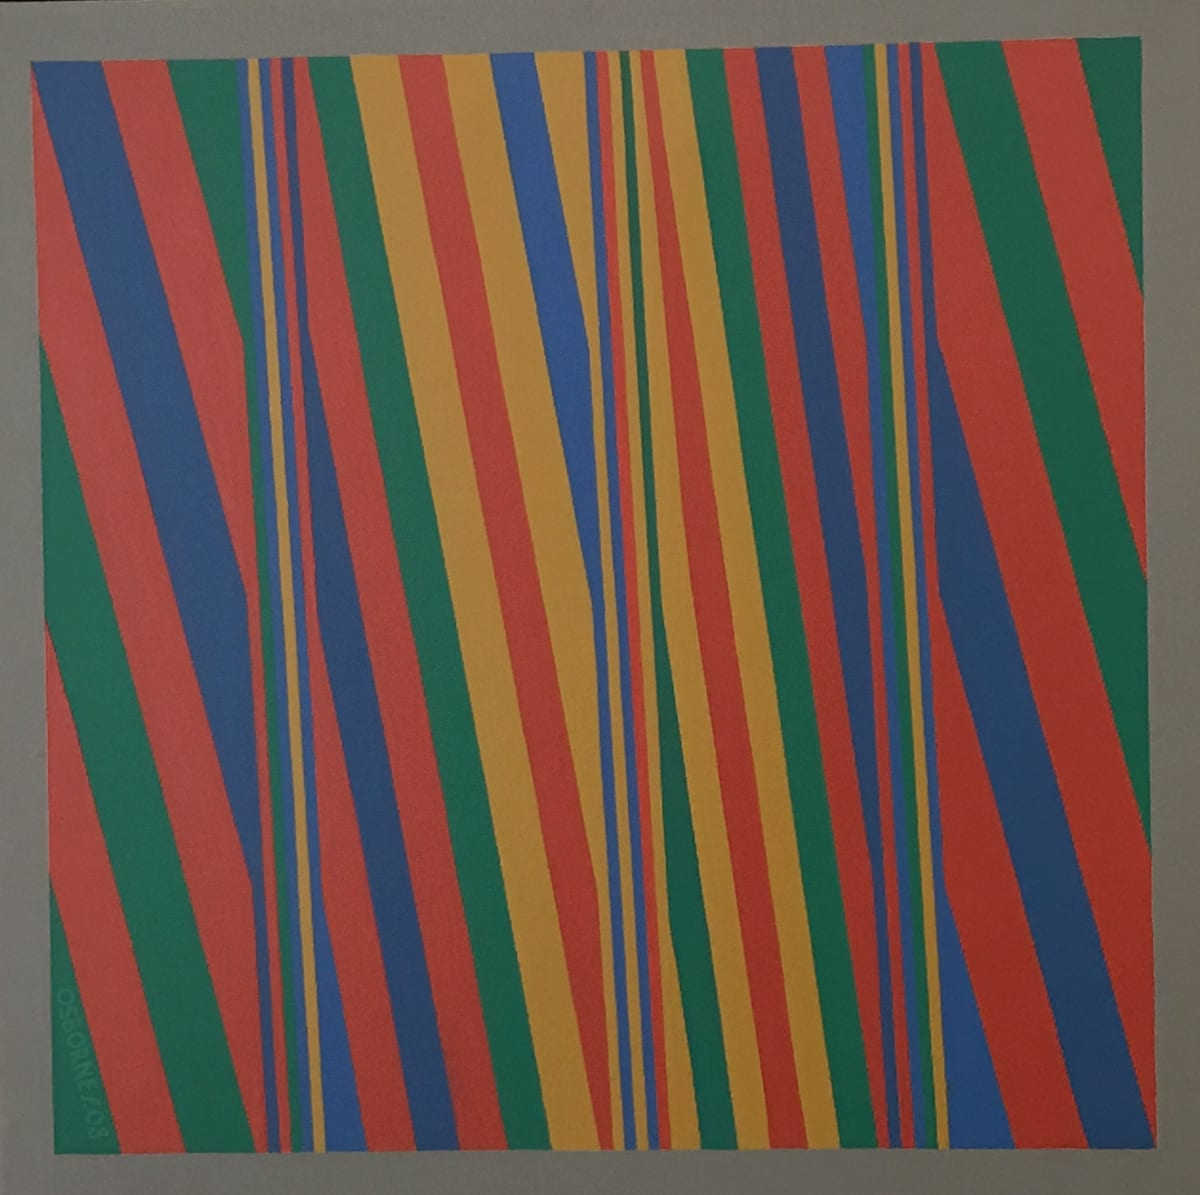 ROY OSBORNE Bends 43, 2008 oil on canvas 51 x 51 cm 20 1/2 x 20 1/2 in signed and dated